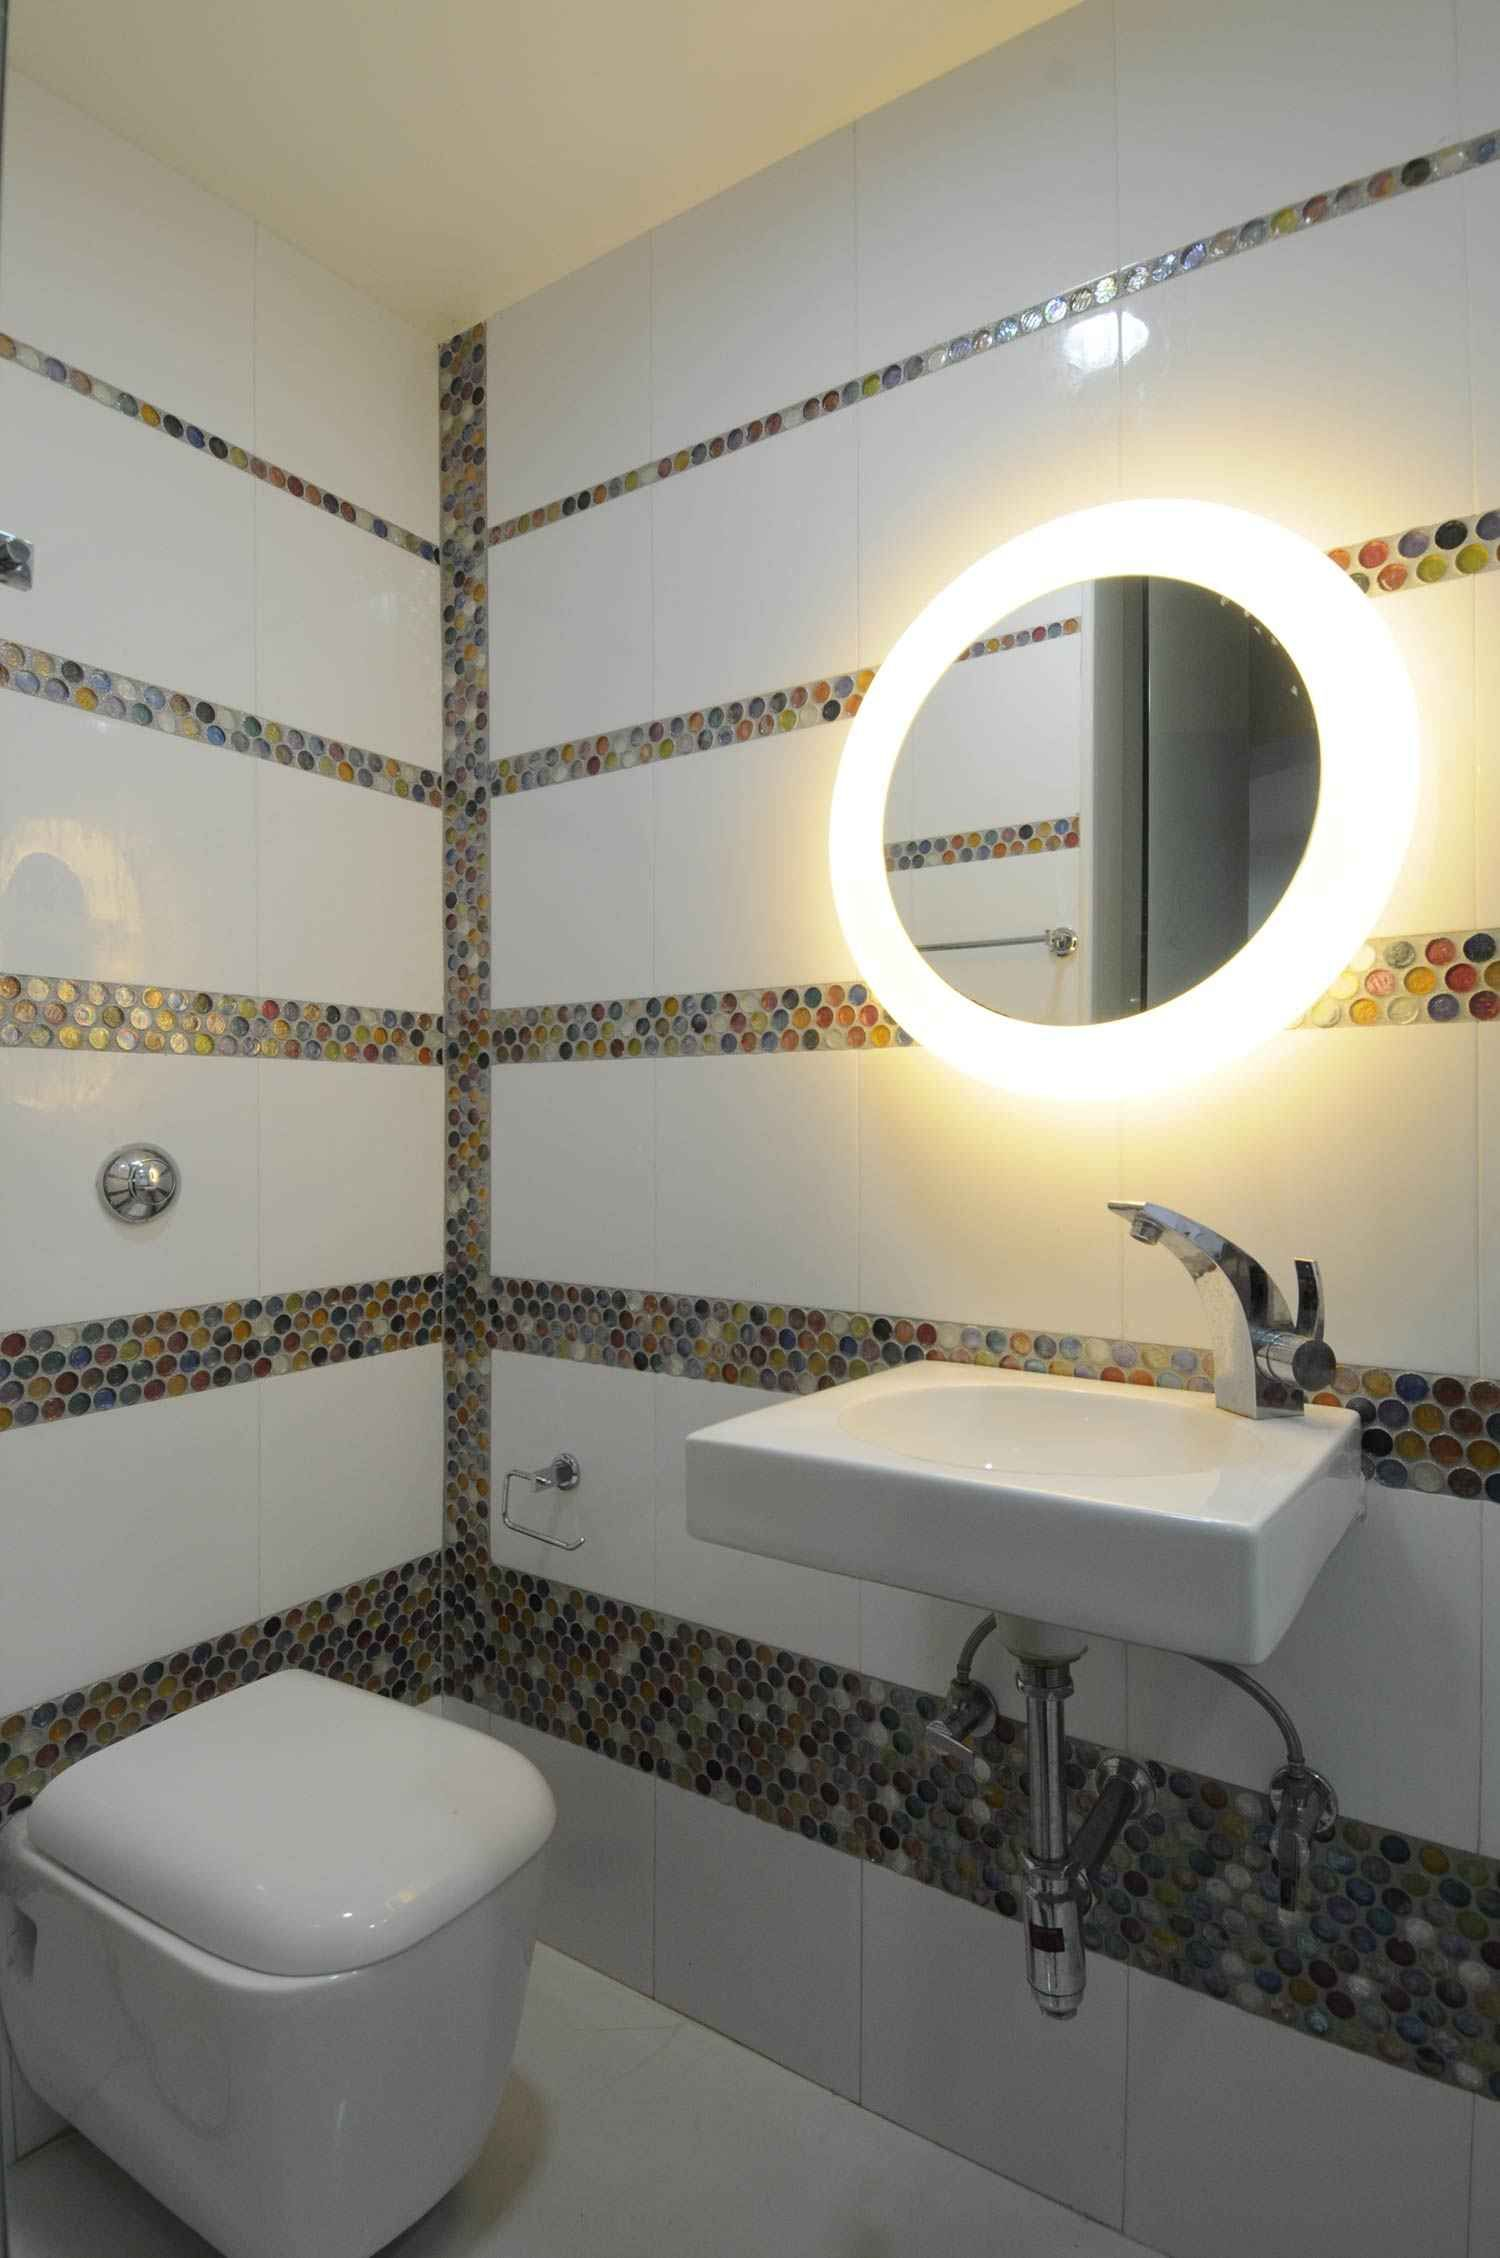 bathroom with mirror by sonali shah architect in mumbai maharashtra india - Bathroom Designs In Mumbai